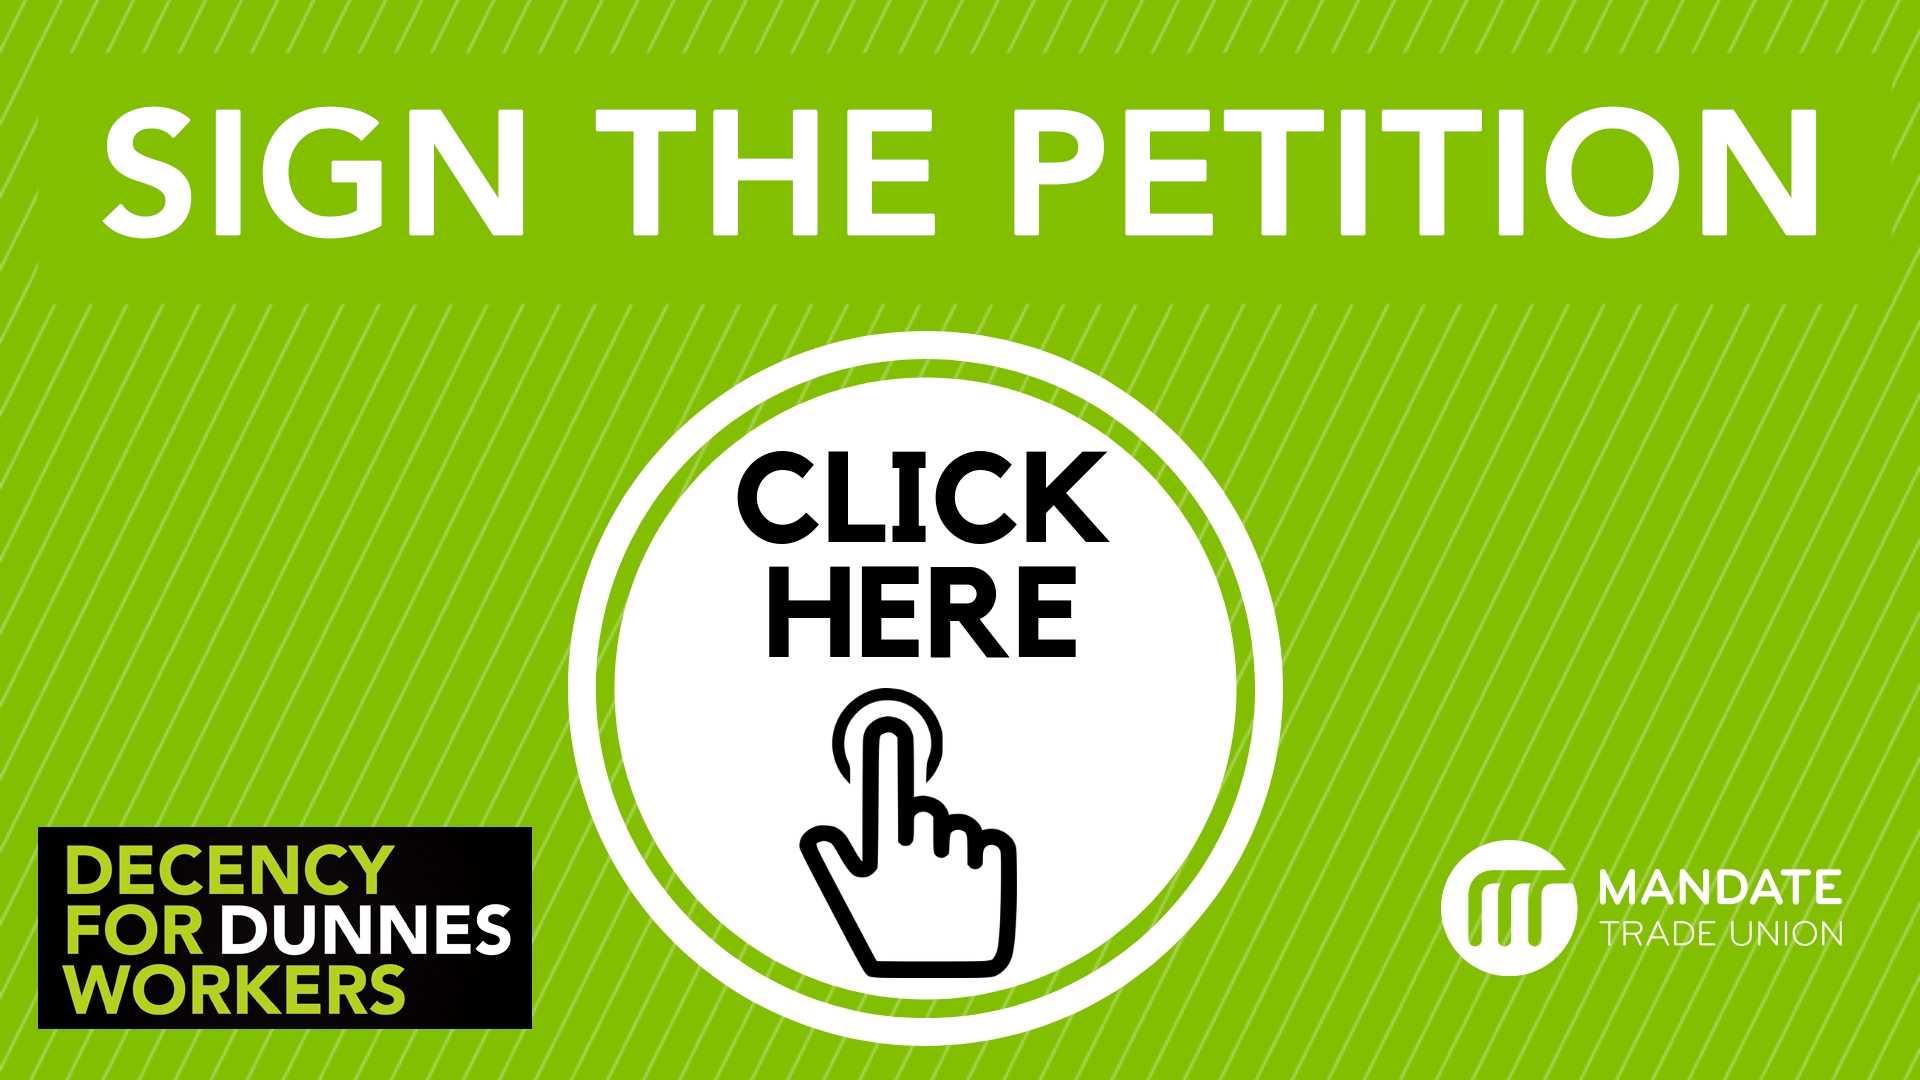 DUNNES_covid_petition